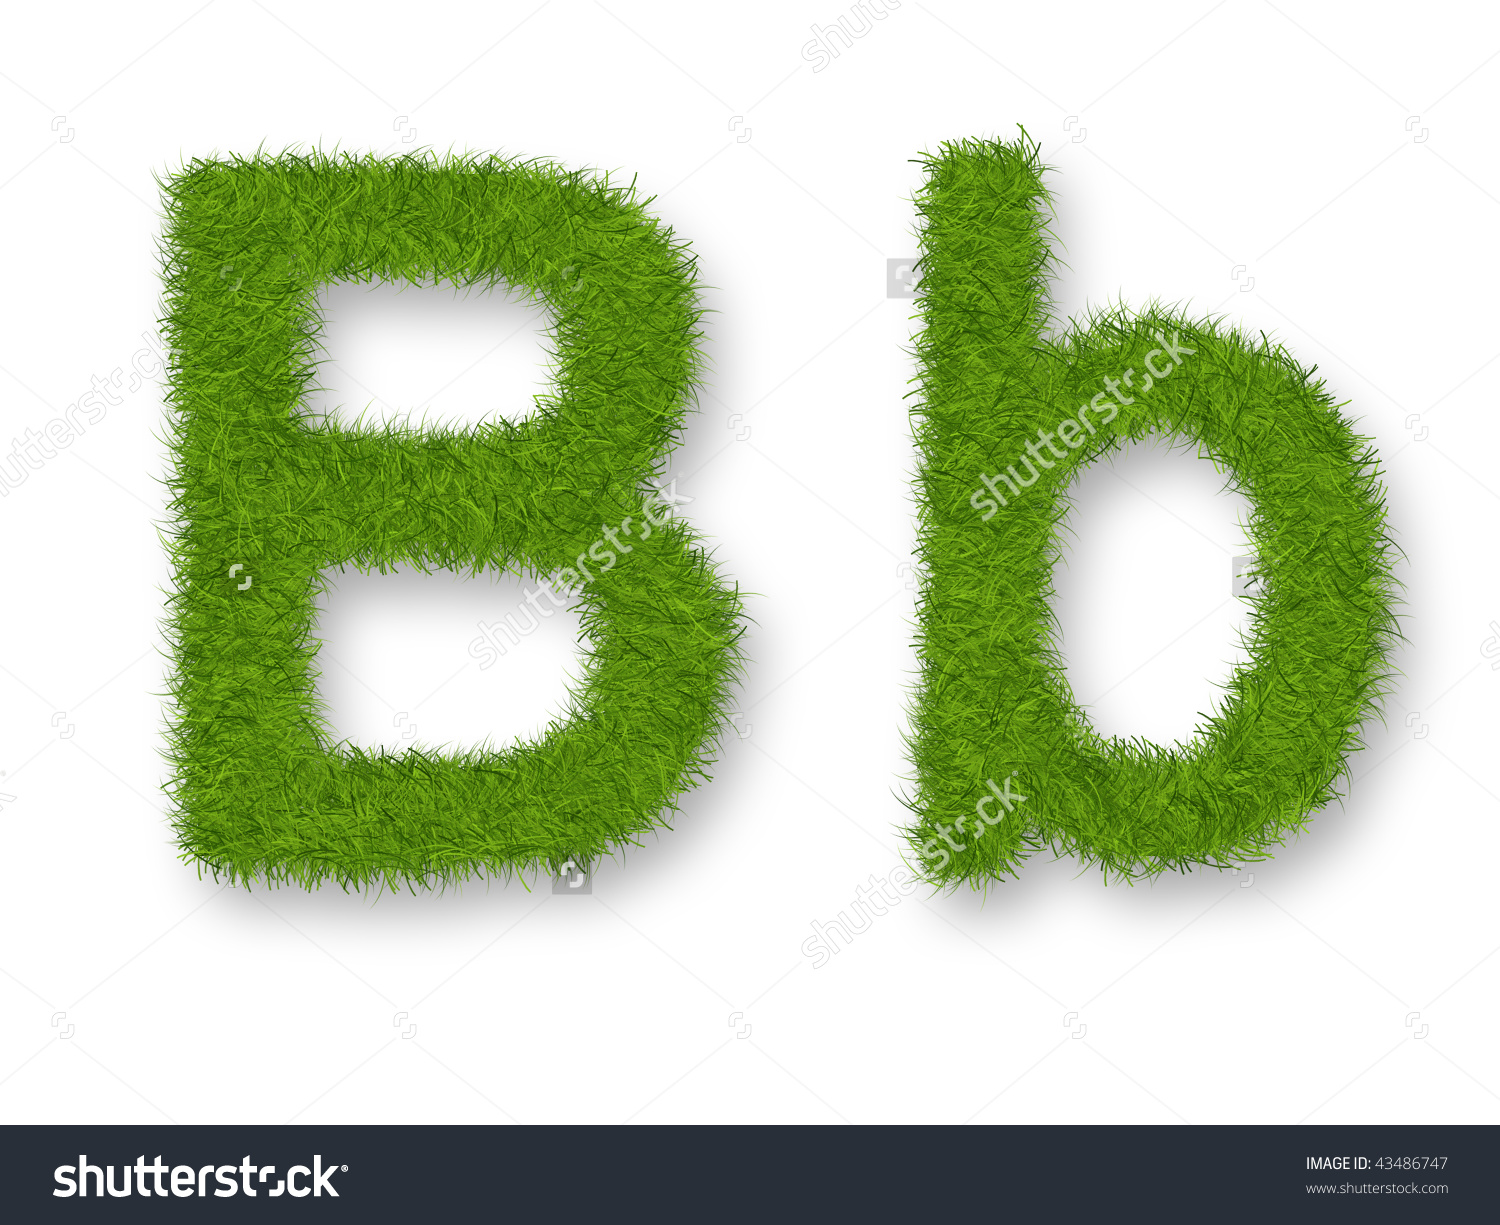 Upper and lower case b letter clipart graphic transparent download Upper and lowercase b letter clipart - ClipartFest graphic transparent download